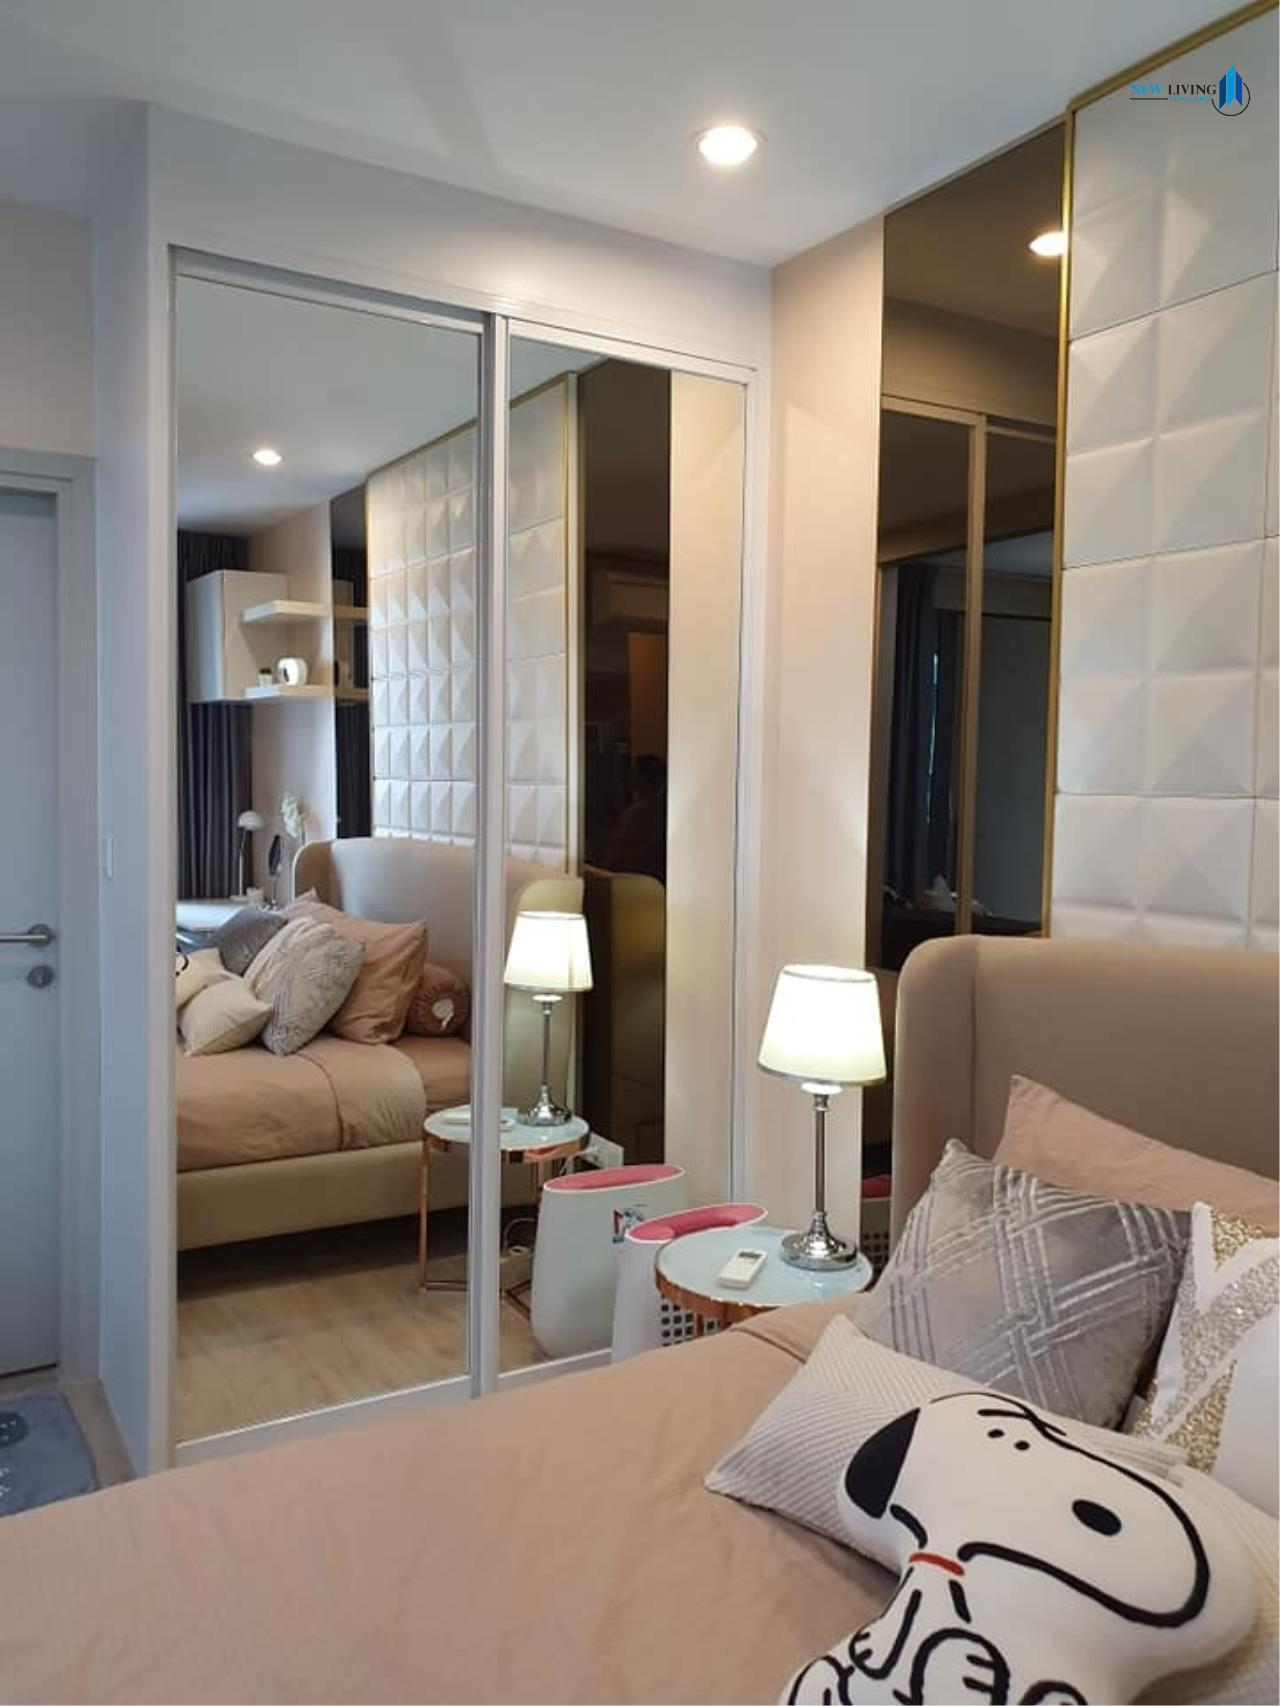 New Living Thailand Agency's +++ Urgent rent !! +++ Ideo Q Chula Samyan, fully furnished 1 bedroom , 33 sq.m.,+++ 4